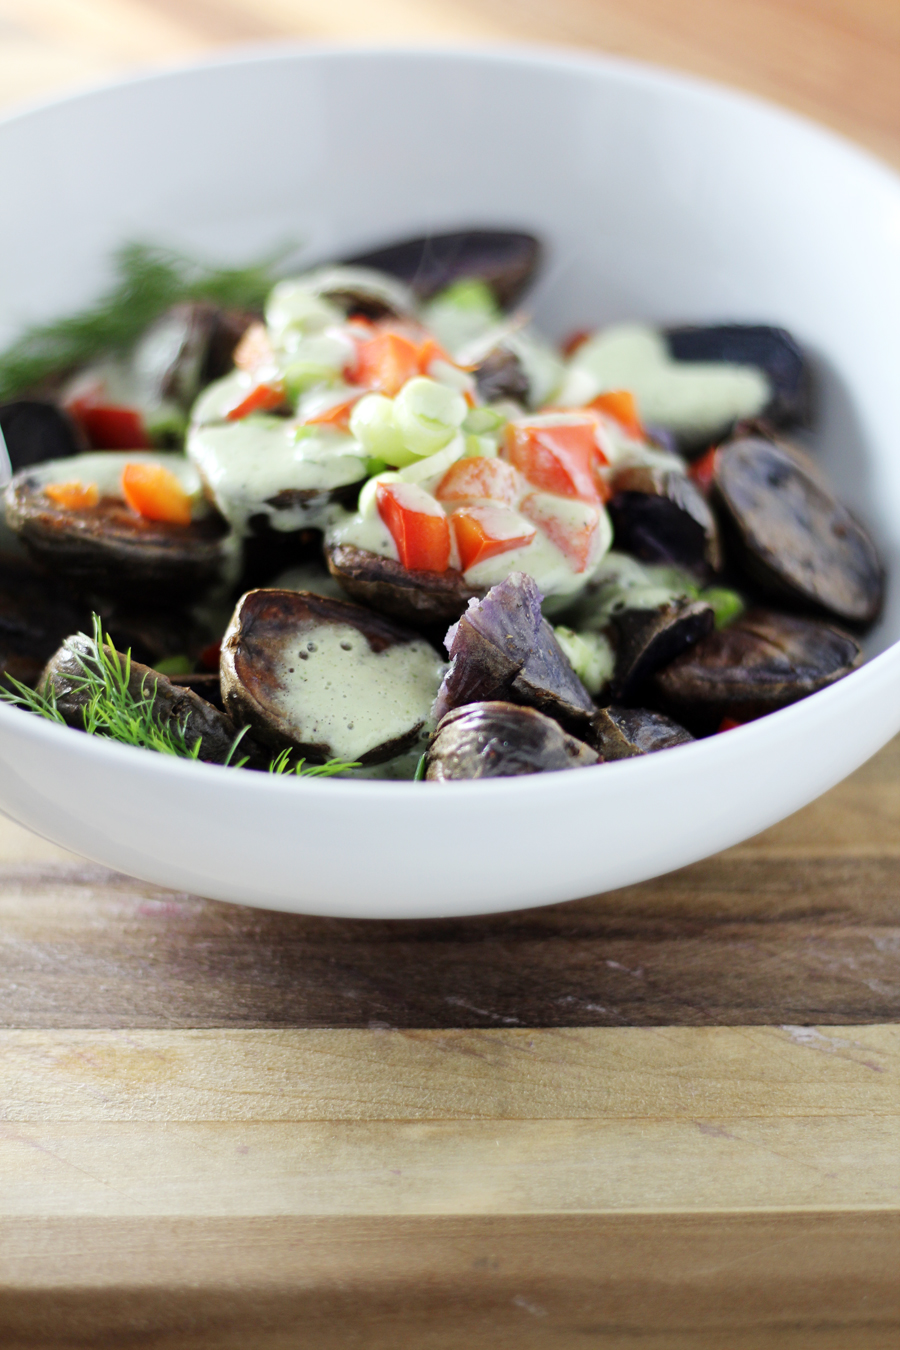 Sprinkle the purple potato salad with fresh chopped red bell peppers and green onions for added color and crunch.